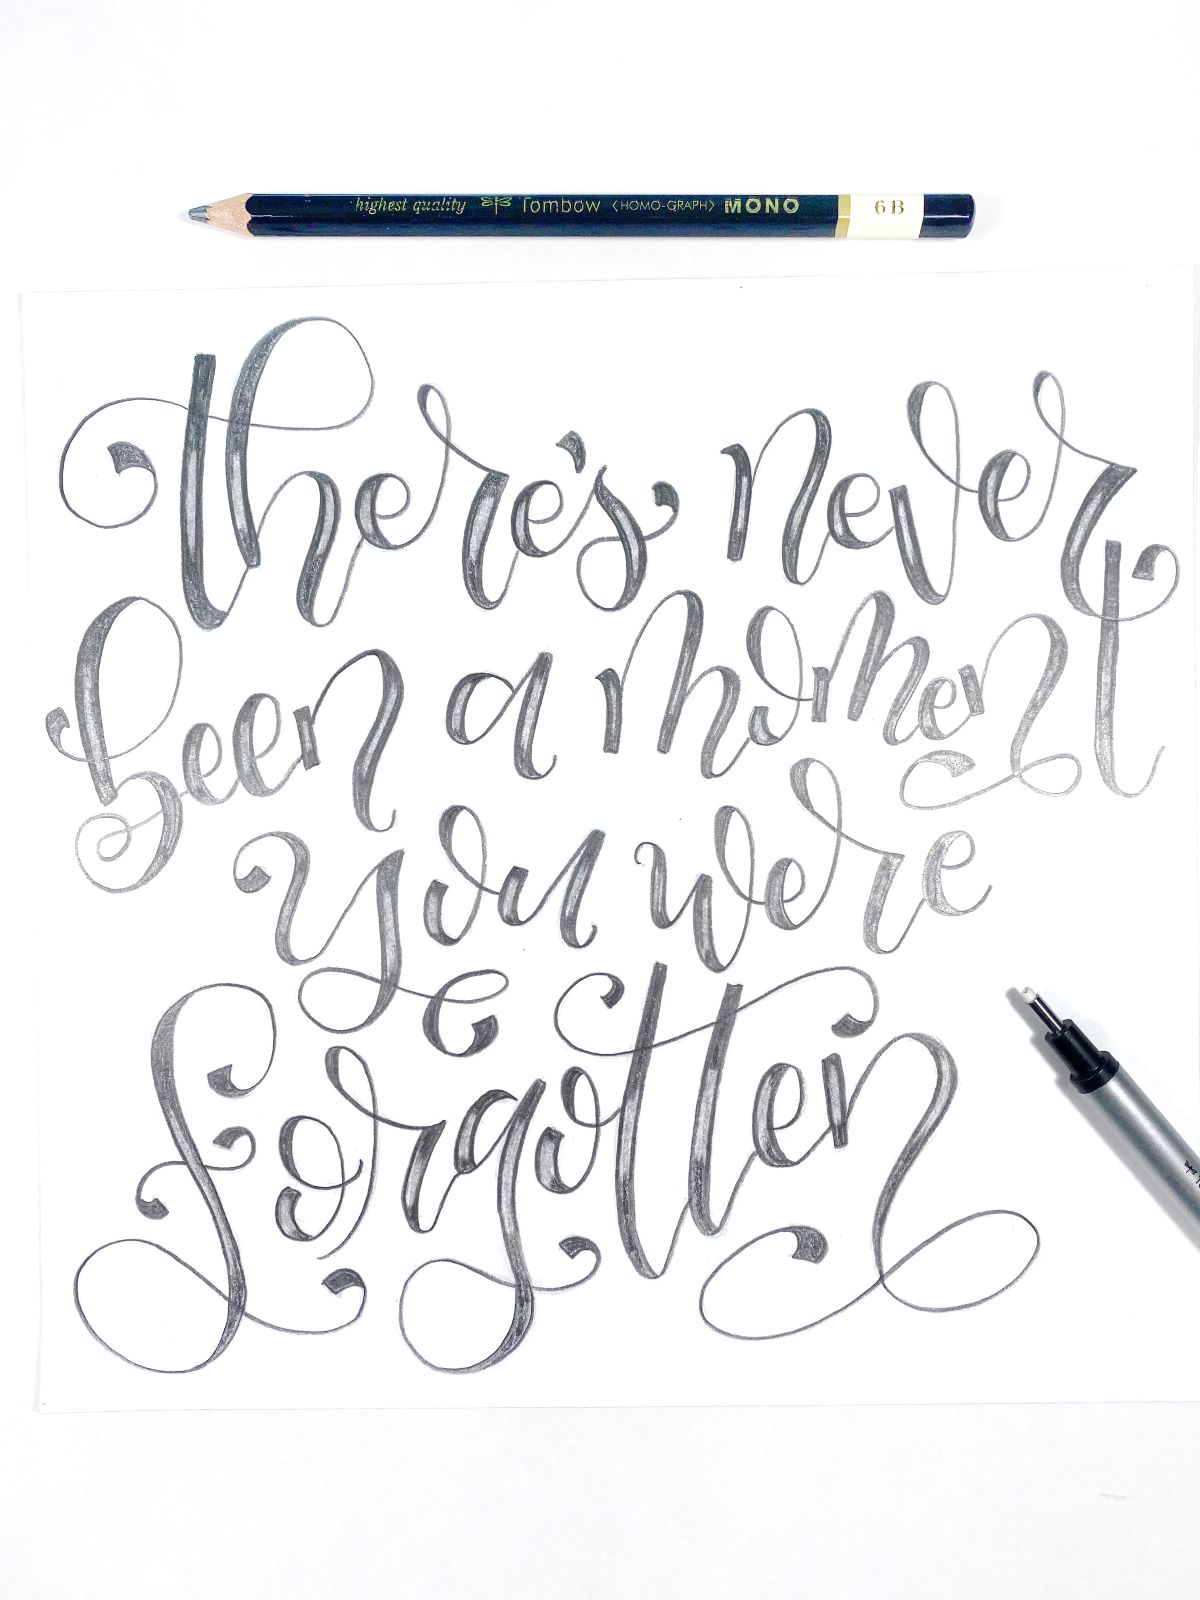 Tombow's Top 5 Tools For Lettering! #tombow #lettering